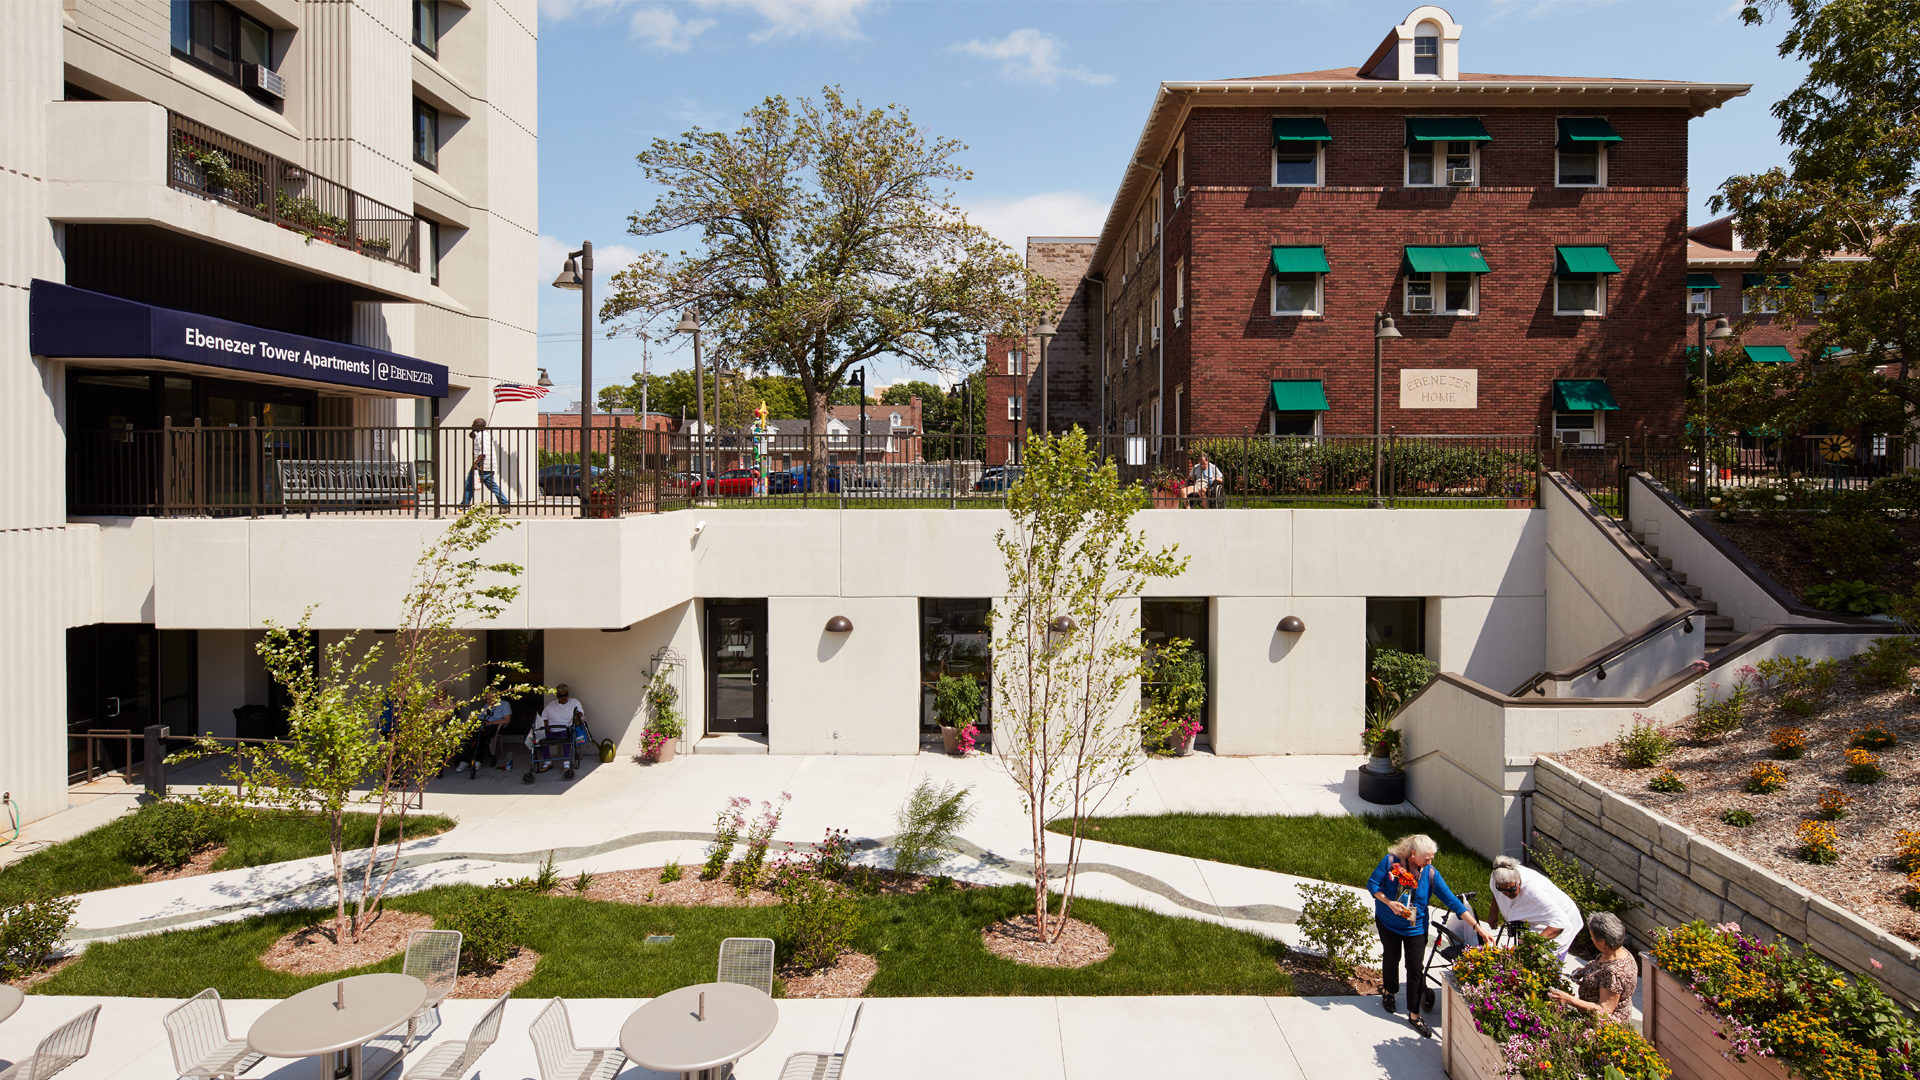 Ebenezer Tower Apartments Exterior Recessed Courtyard